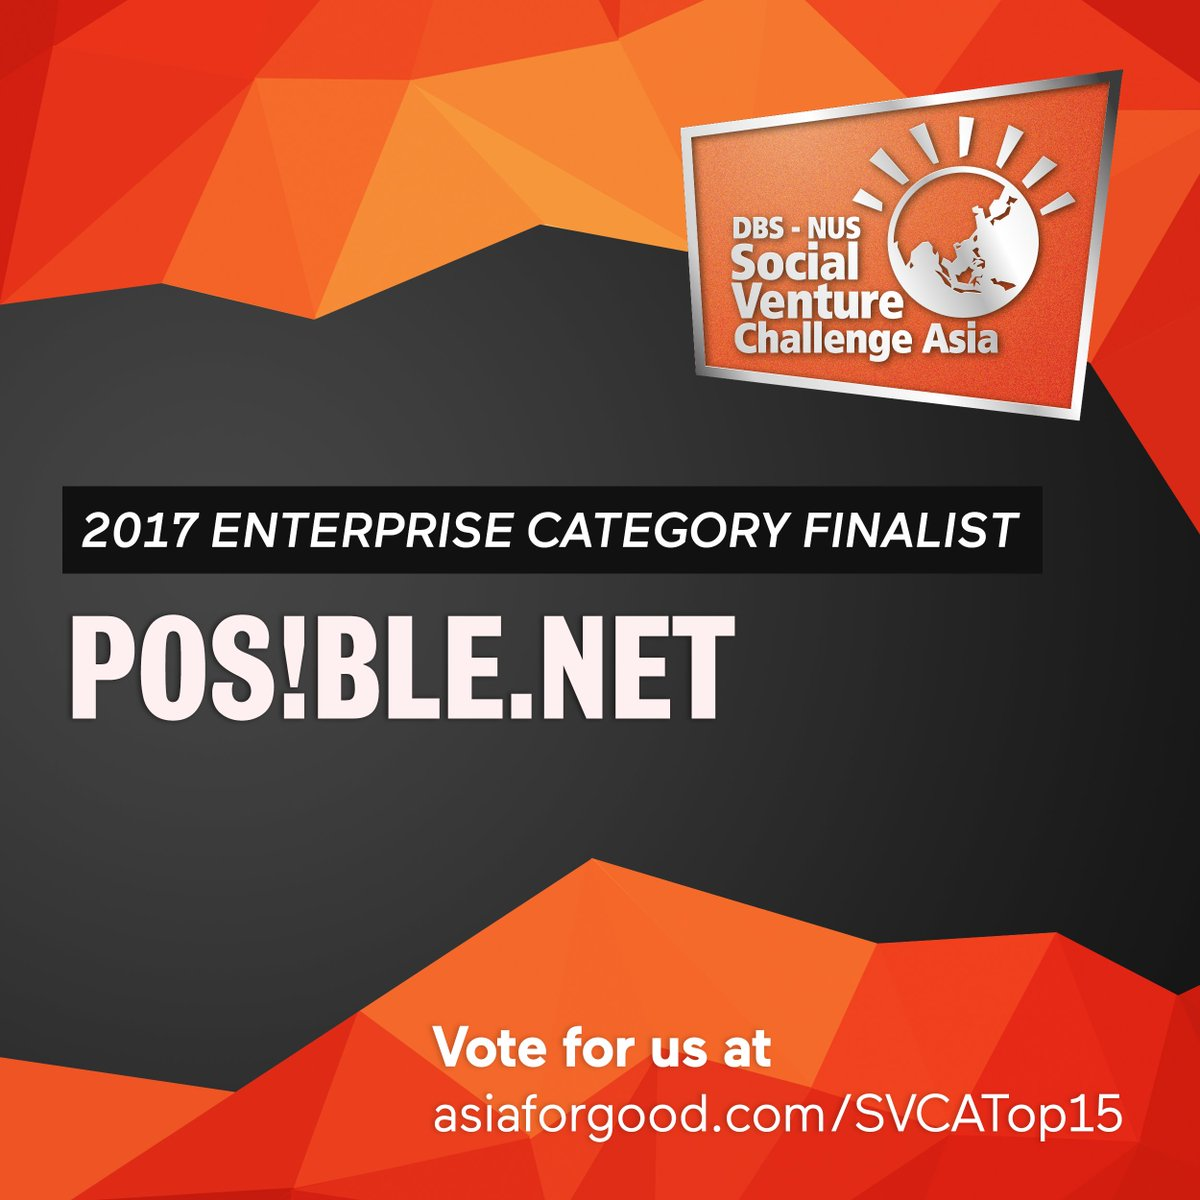 test Twitter Media - Don't forget to vote for https://t.co/BFj9Gq9CB3! Lone PHL entry in 2017 Social Venture Challenge Asia Awards: https://t.co/qQx1NzsGyE https://t.co/Y6TGPetcJd